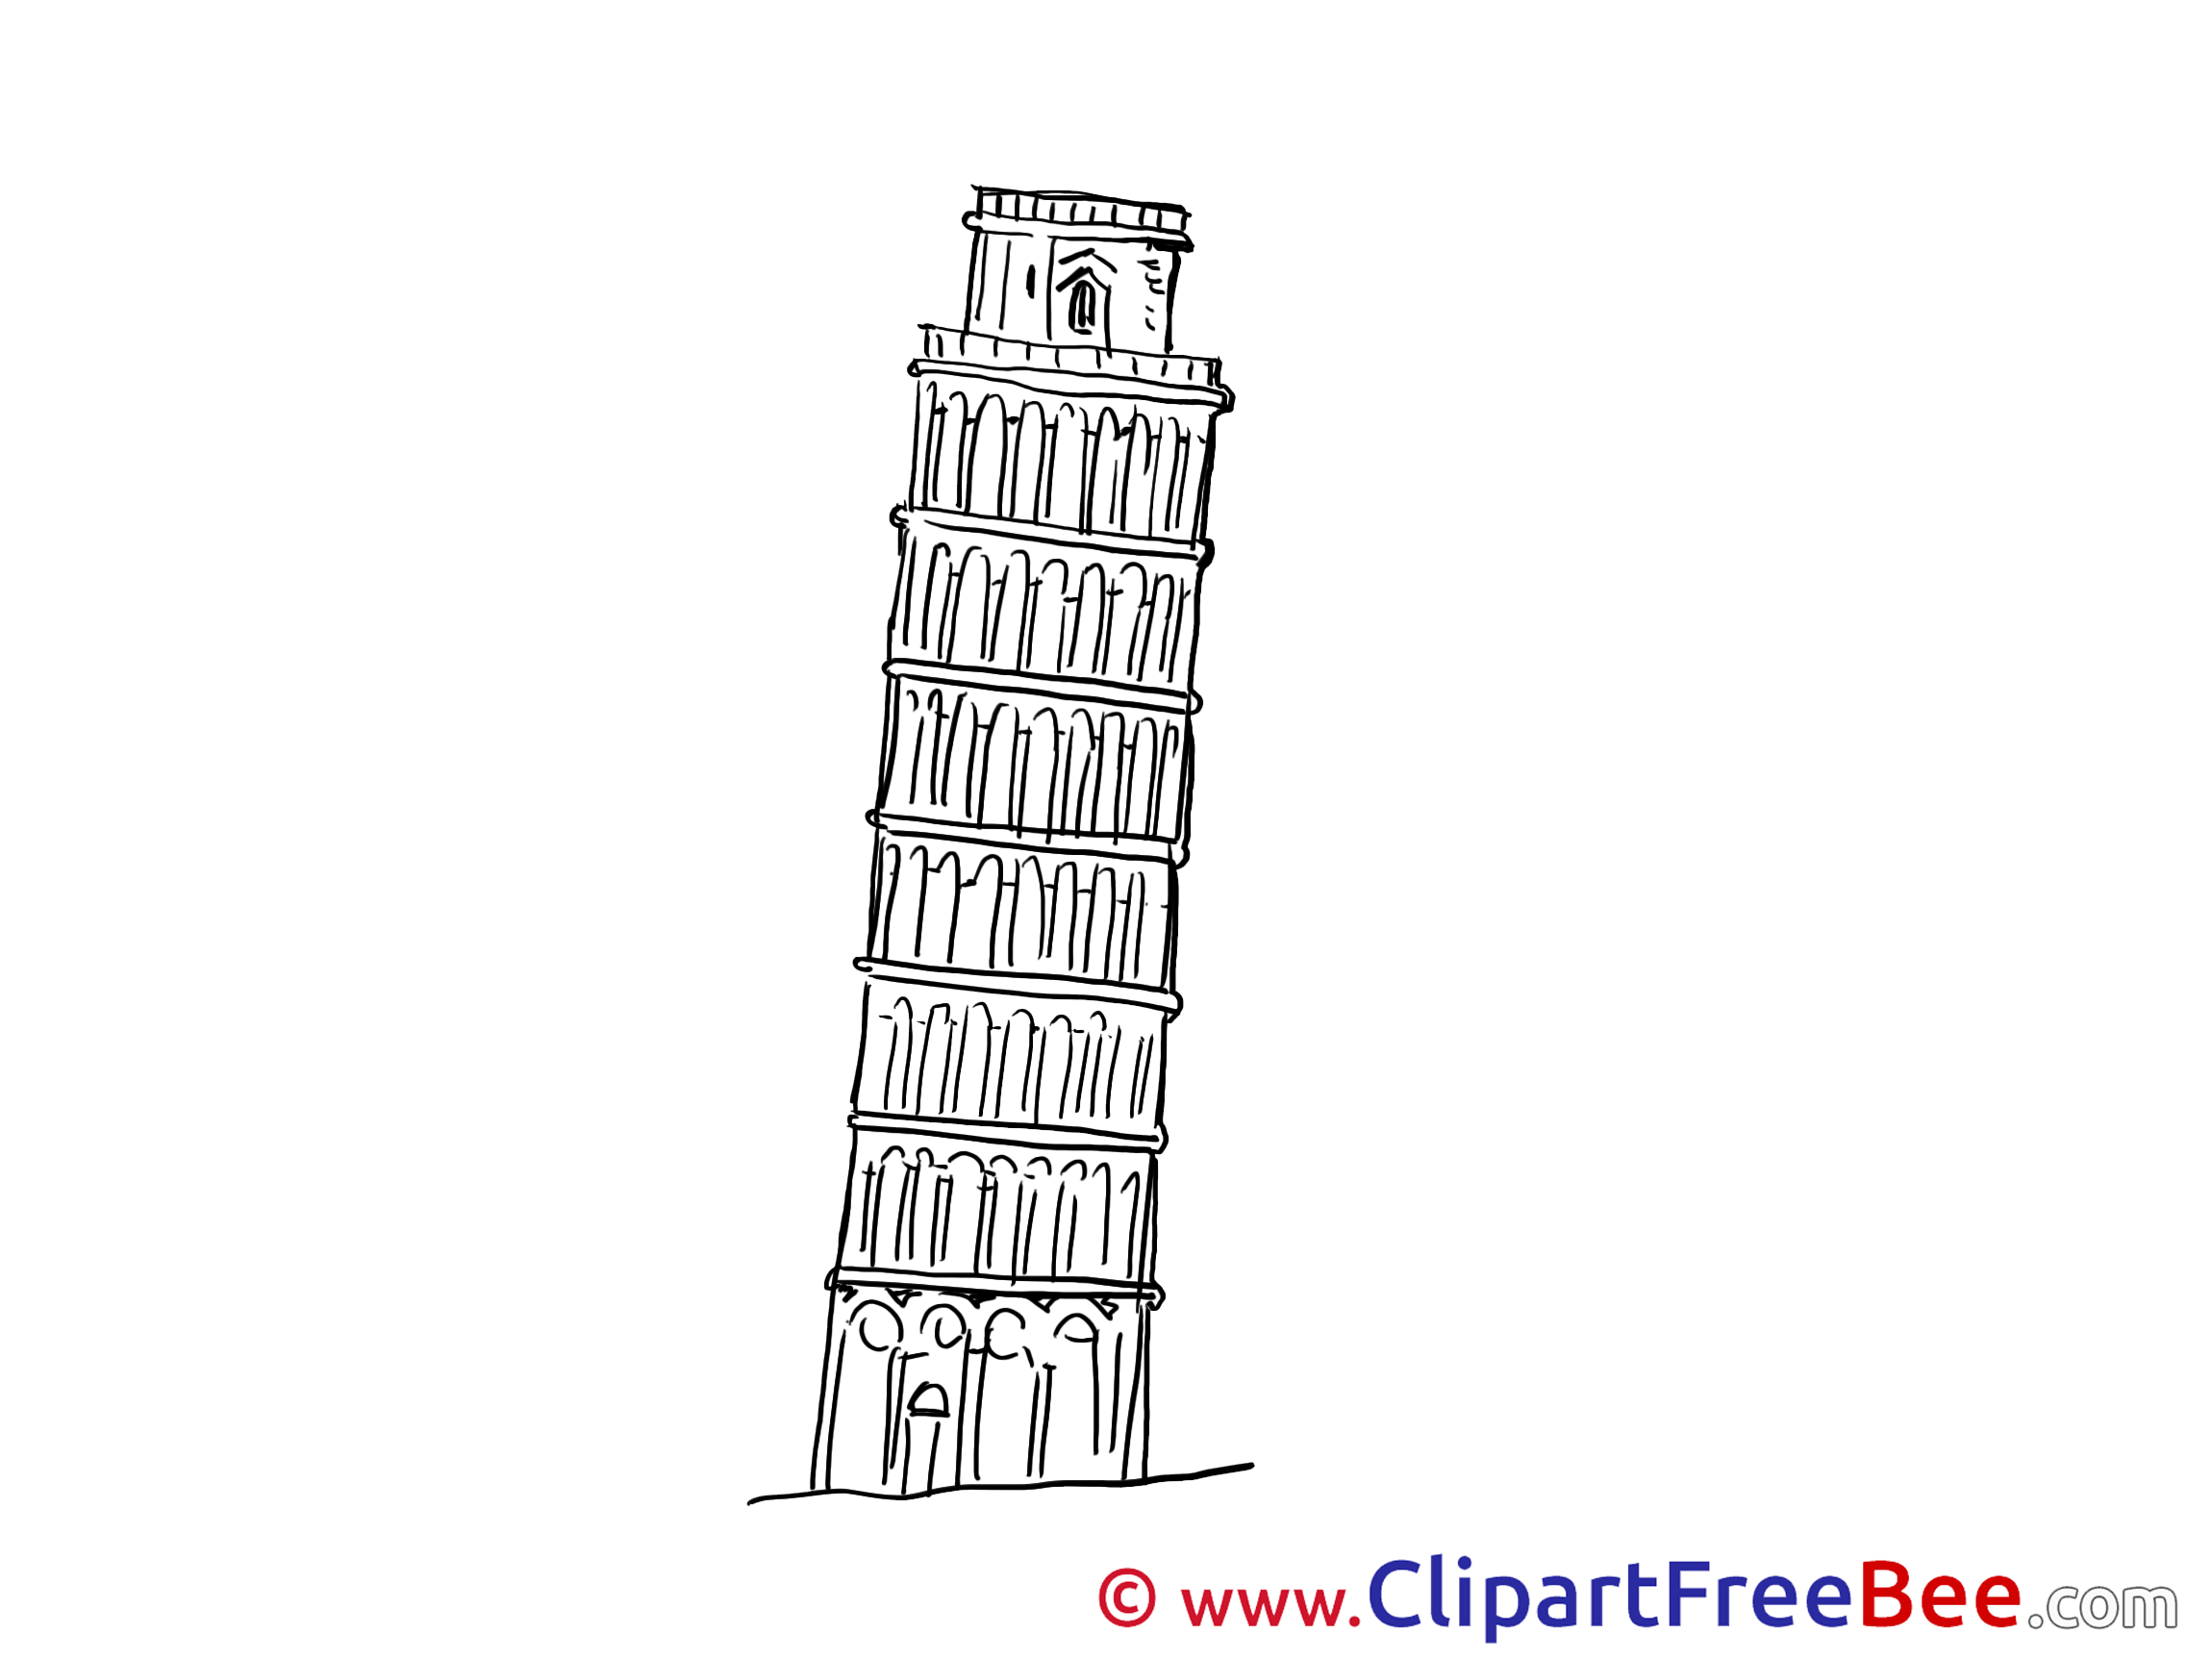 printable pictures of the leaning tower of pisa the leaning tower of pisa art print click on the image to printable pictures of of pisa leaning the tower